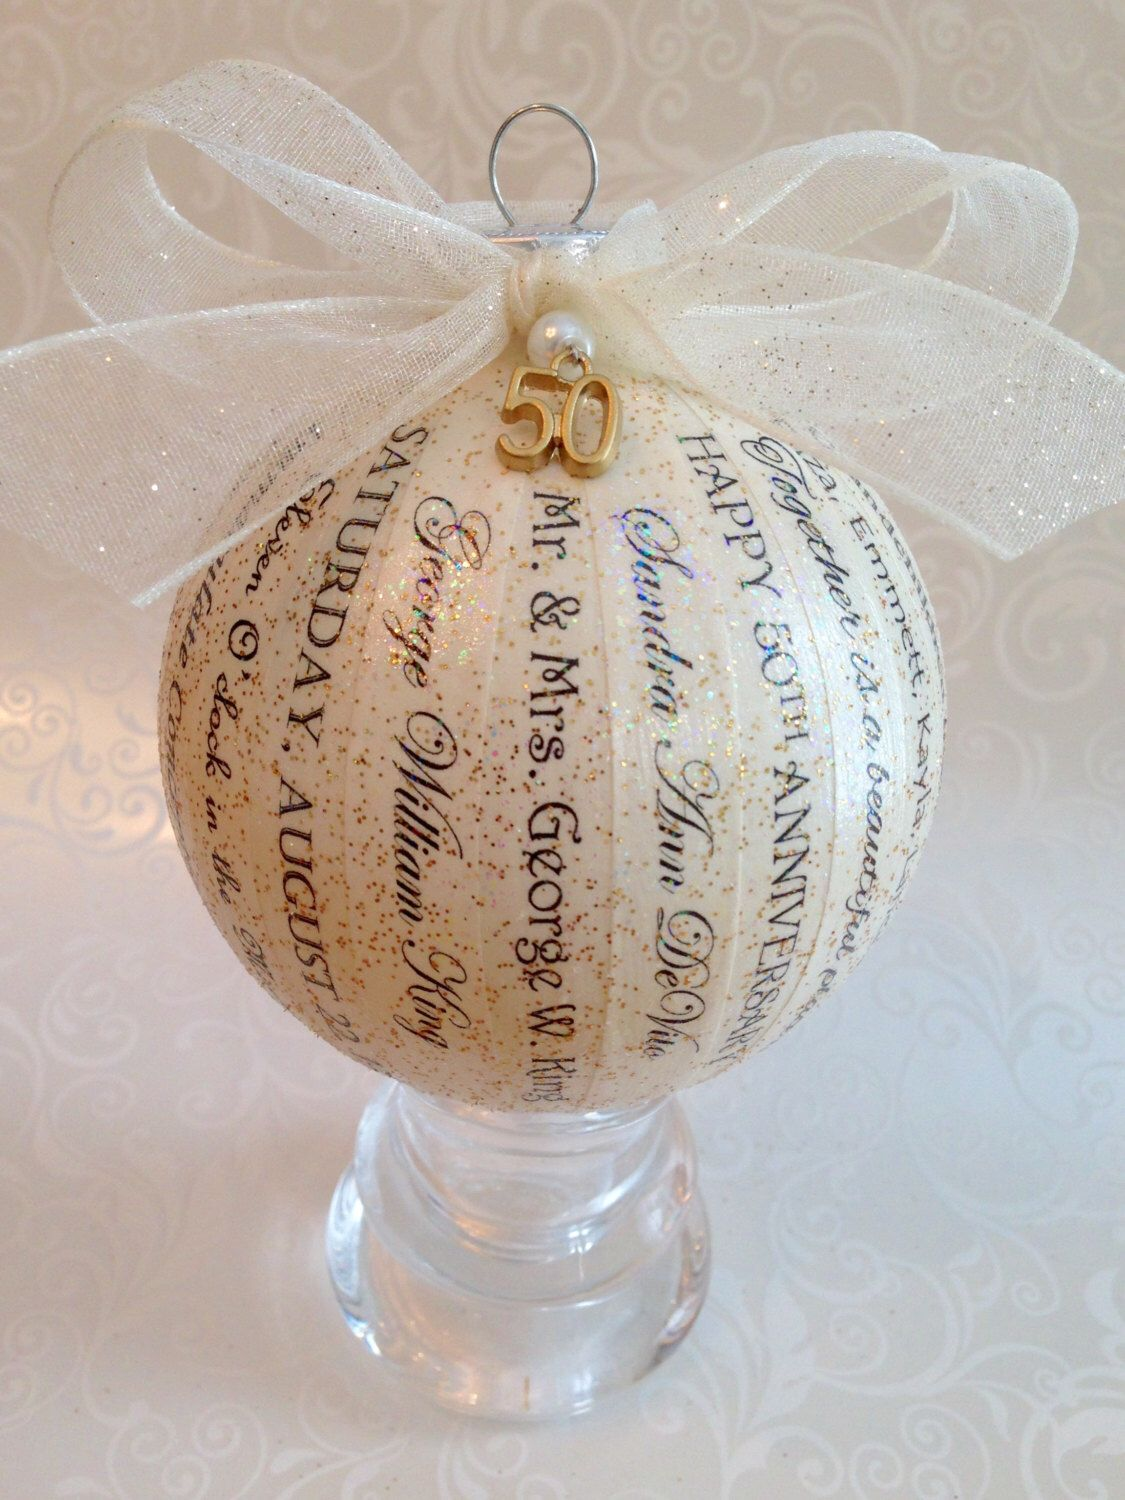 50th Anniversary Gift For Parentsfriends Personalized Ornament